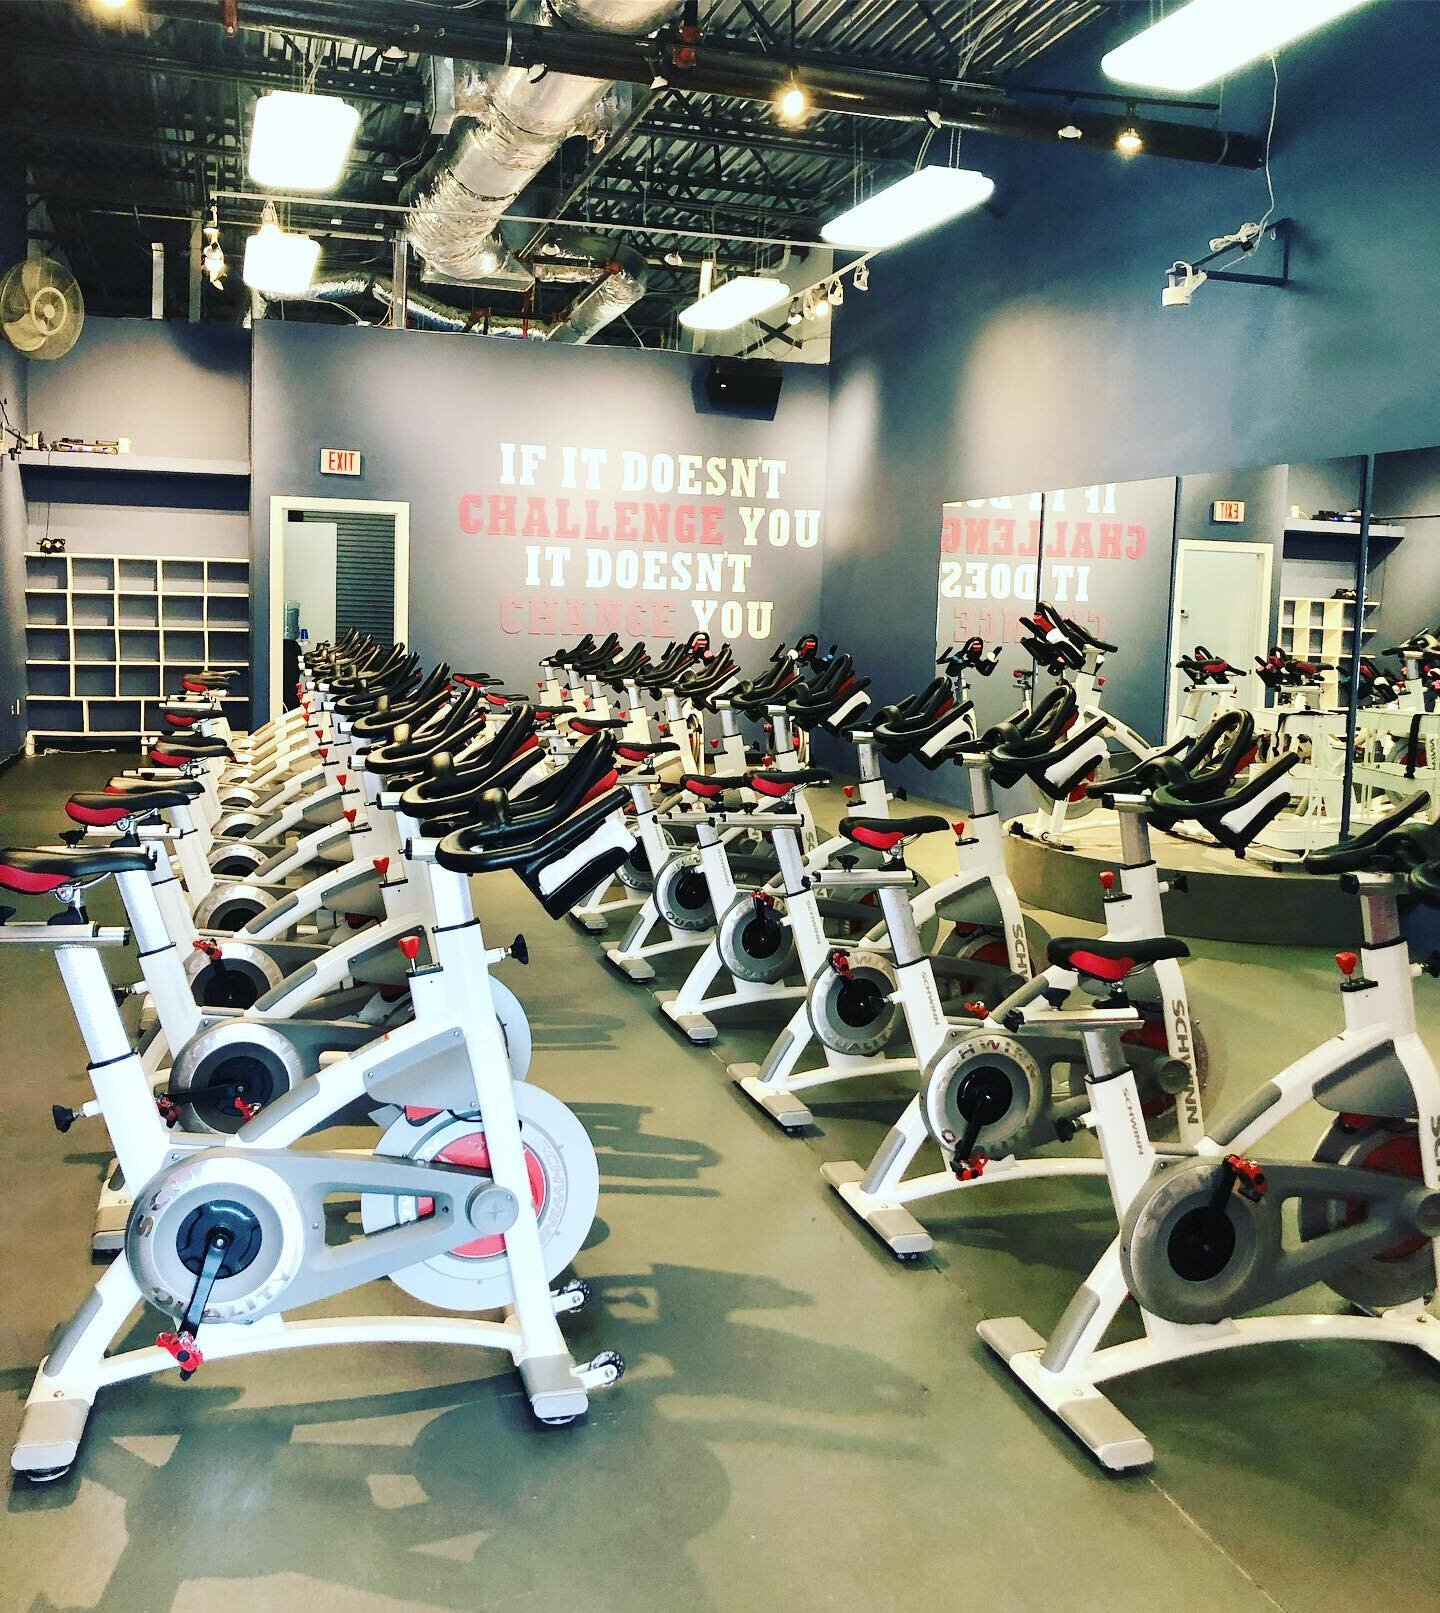 who are we? - Here at Off The Handle, we believe that every rider is an athlete, no matter his or her skill set. It's our mission to make every person who walks through our door feel a little bit stronger than they were before they came. Begin that journey today to a stronger body & mindset.It's also our mission to give back to the community. Both owners are passionate about philanthropy and intend to donate a portion of revenue to charity.